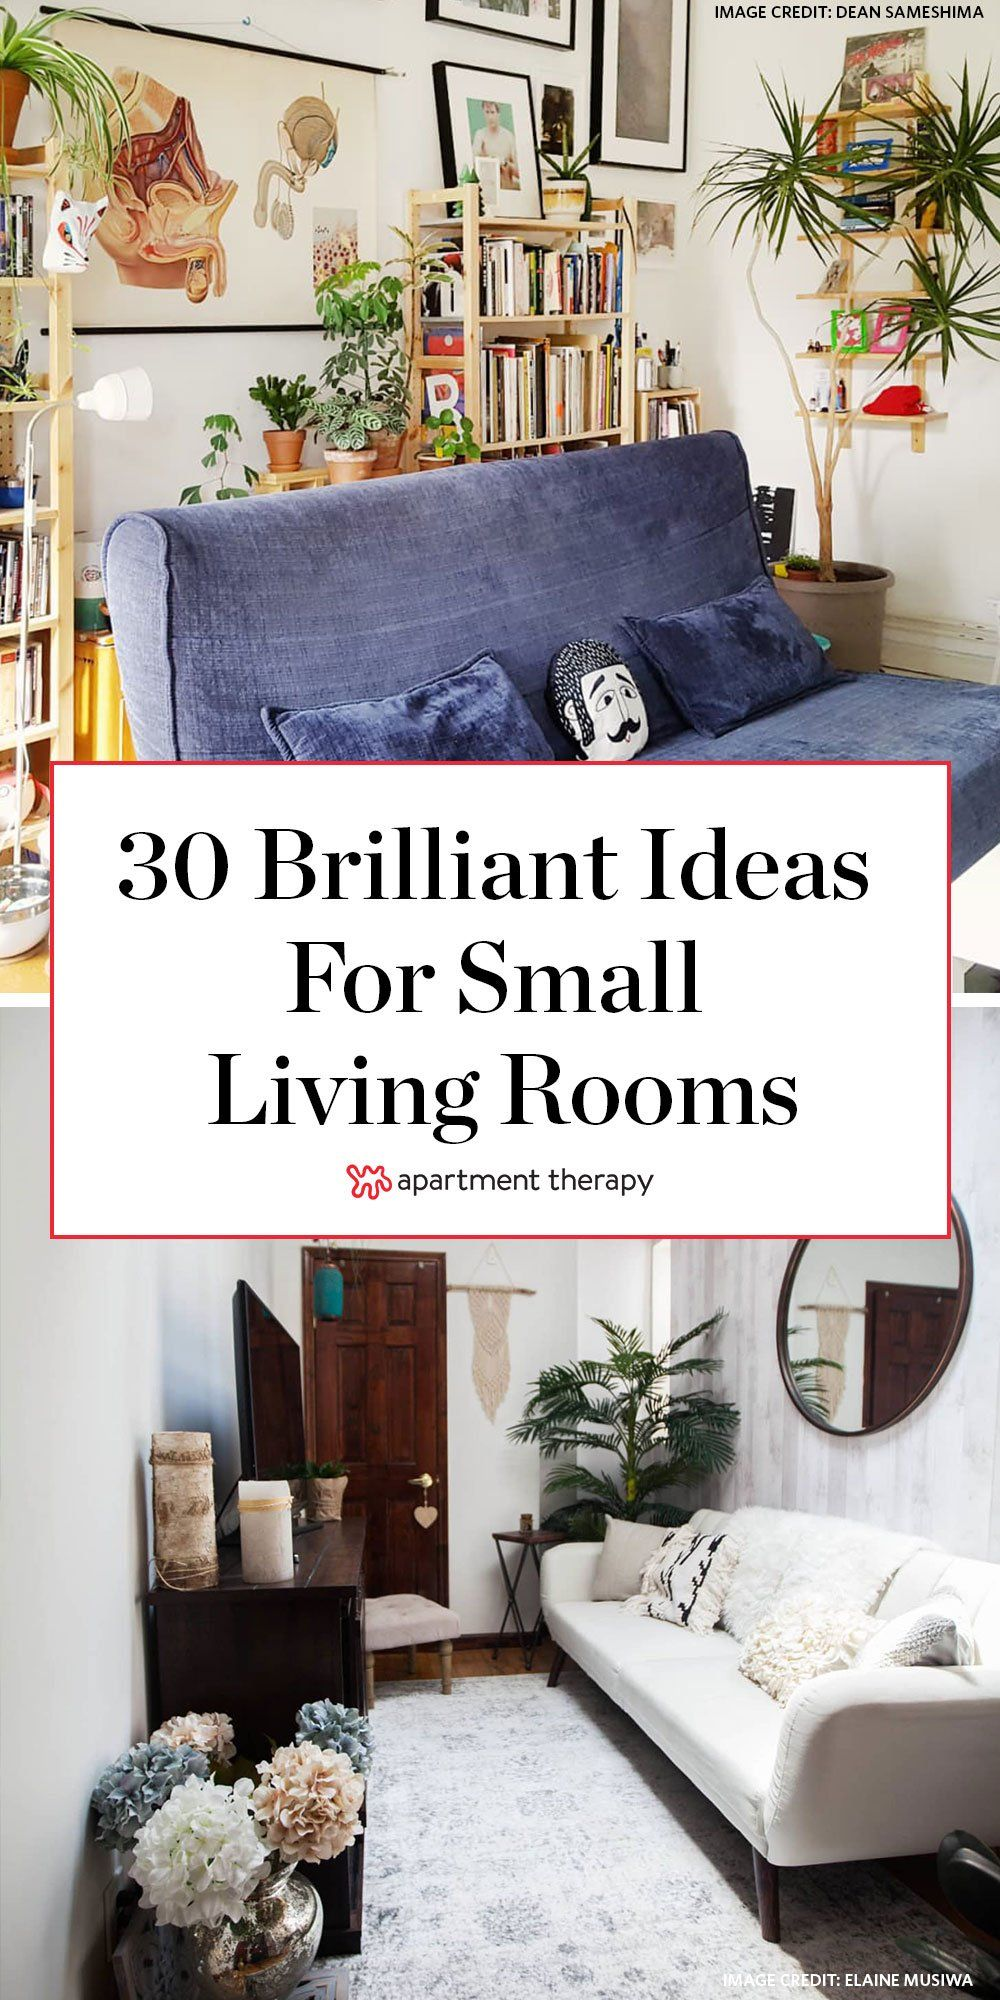 If You Ve Struggled With How To Arrange Furniture Decorating Ideas Design Inspiration And B In 2020 Decorating Small Spaces Small Living Rooms Simple Apartment Decor